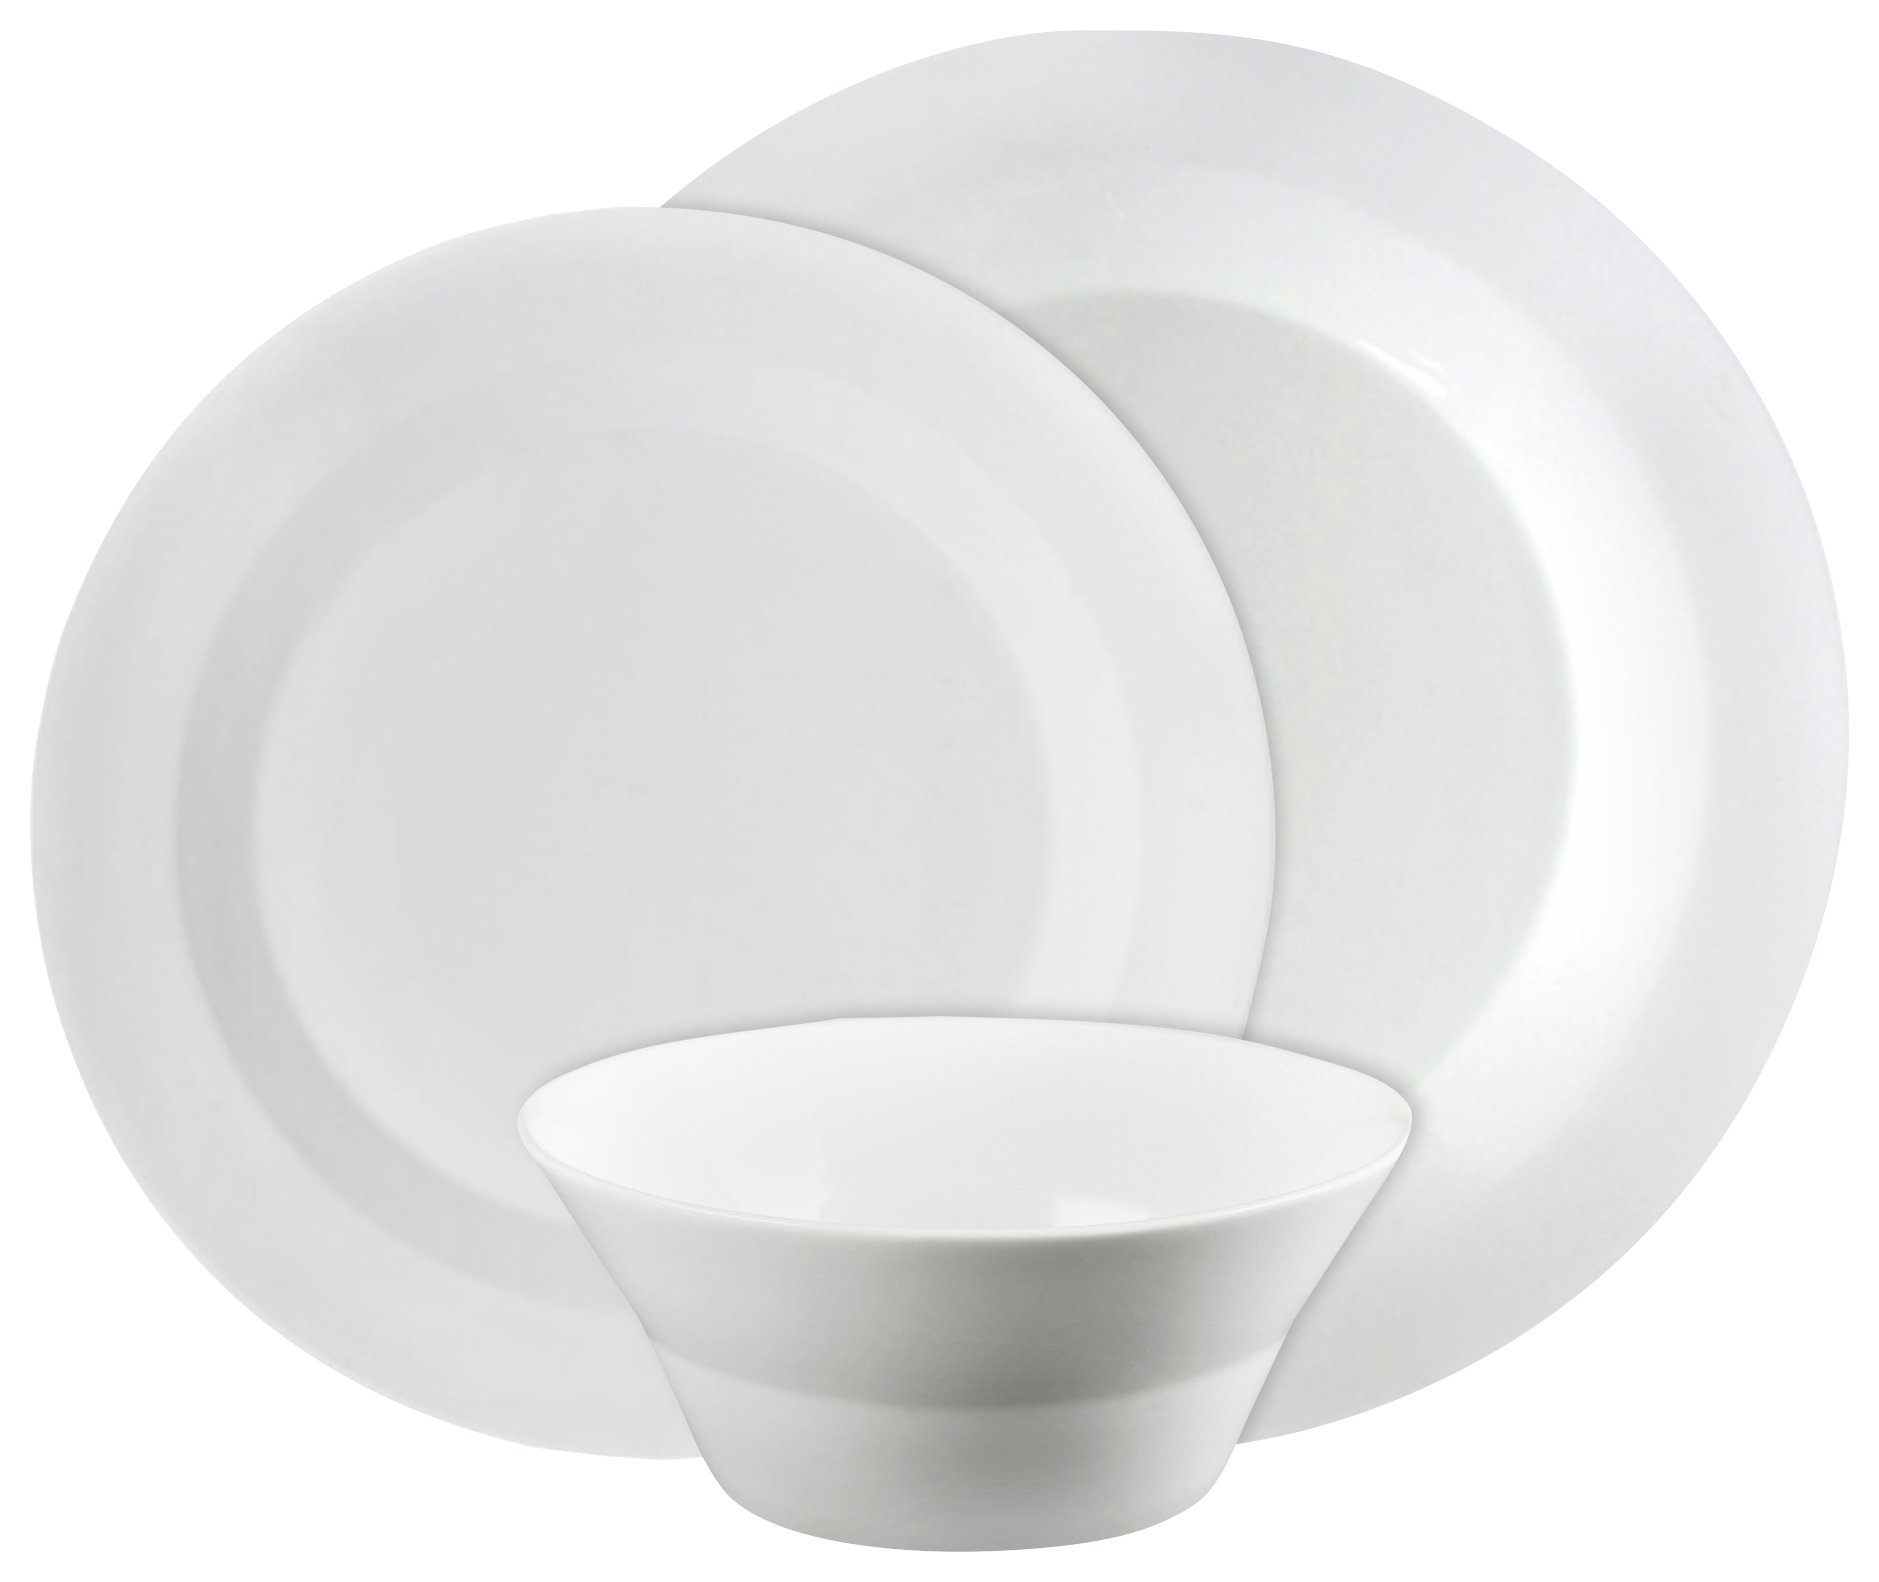 Image of Denby Everyday 12 Piece Bone China Boxed Dinner Set - White